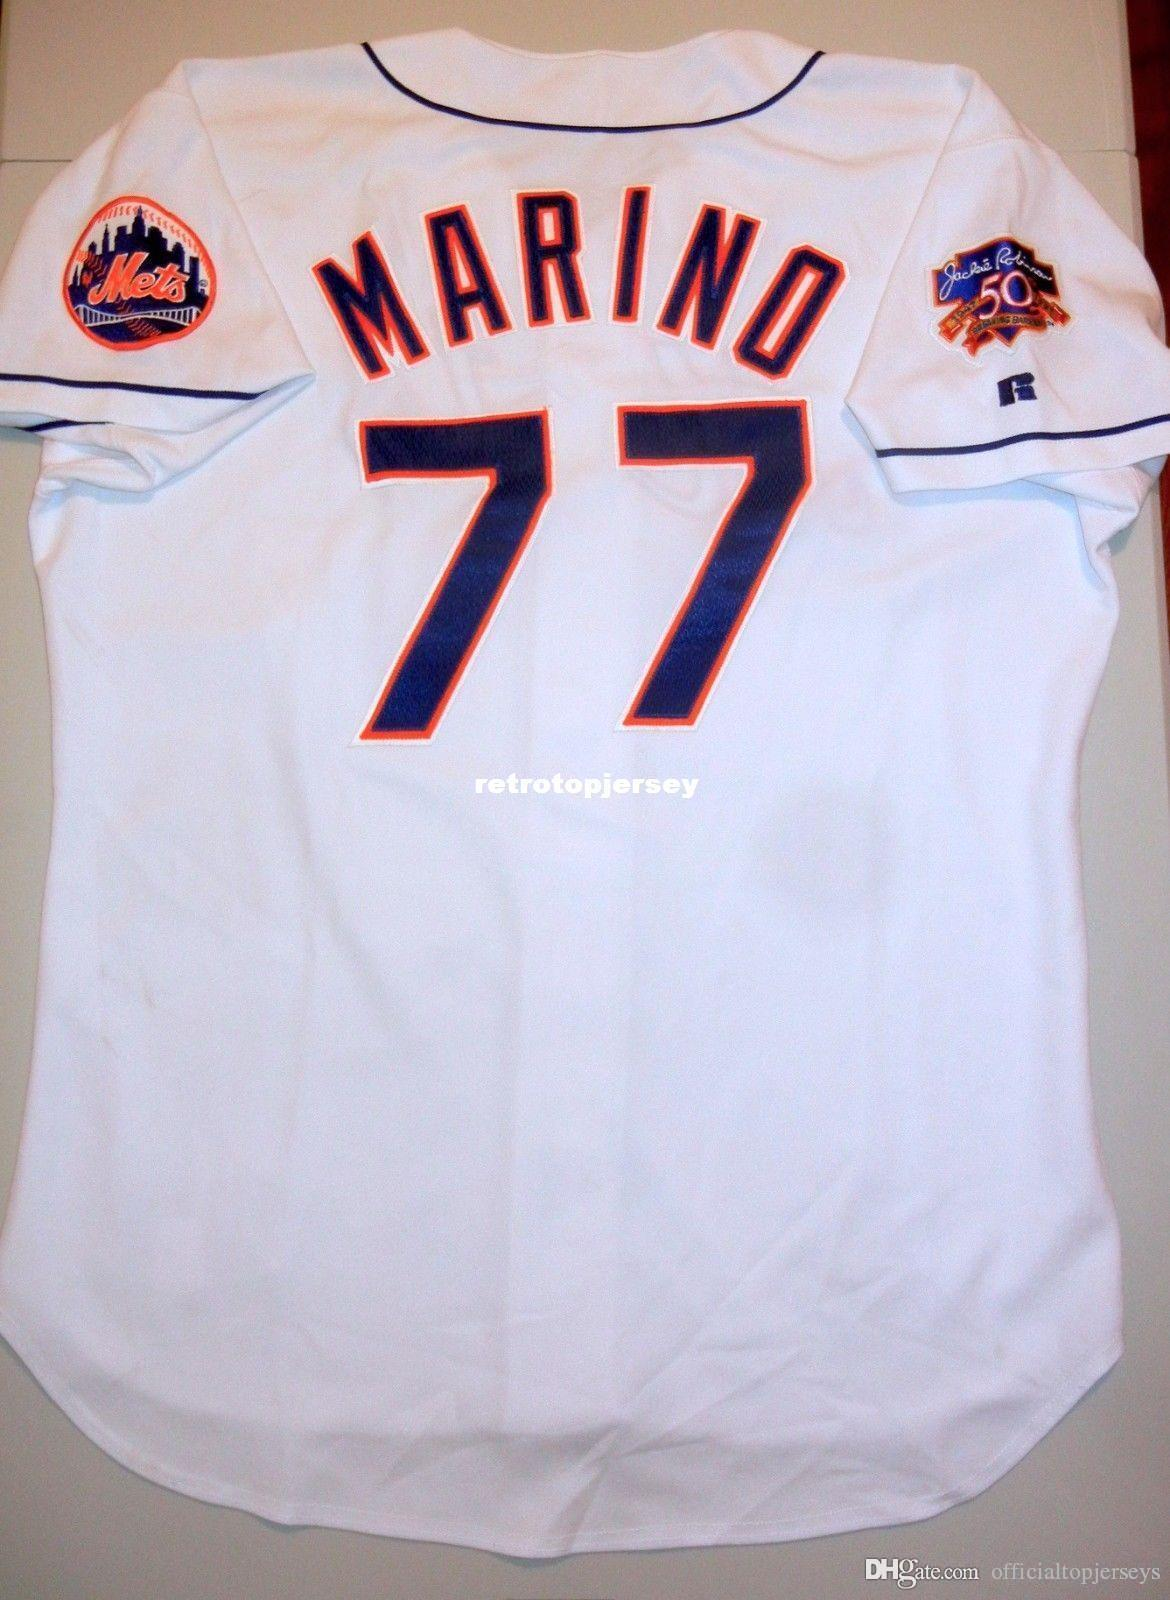 Cheap Top Retro NOVO New # 77 Marino NEW YORK 97 Jersey Branco Alfonzo Olerud 52 homens jerseys costurado beisebol